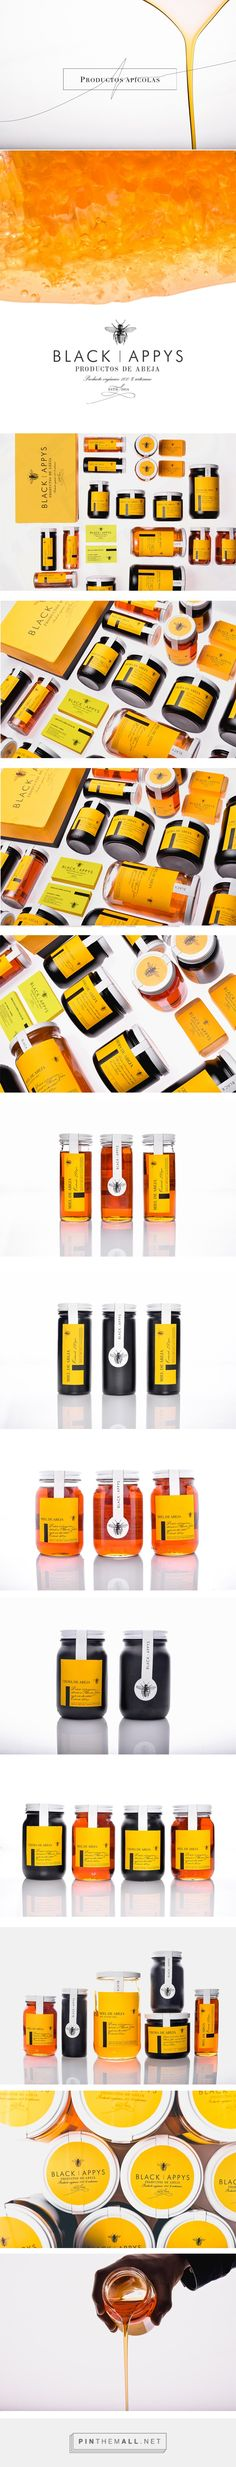 Black Appys on Behance by Daniel Barba curated by Packaging Diva PD. Yummy honey packaging.